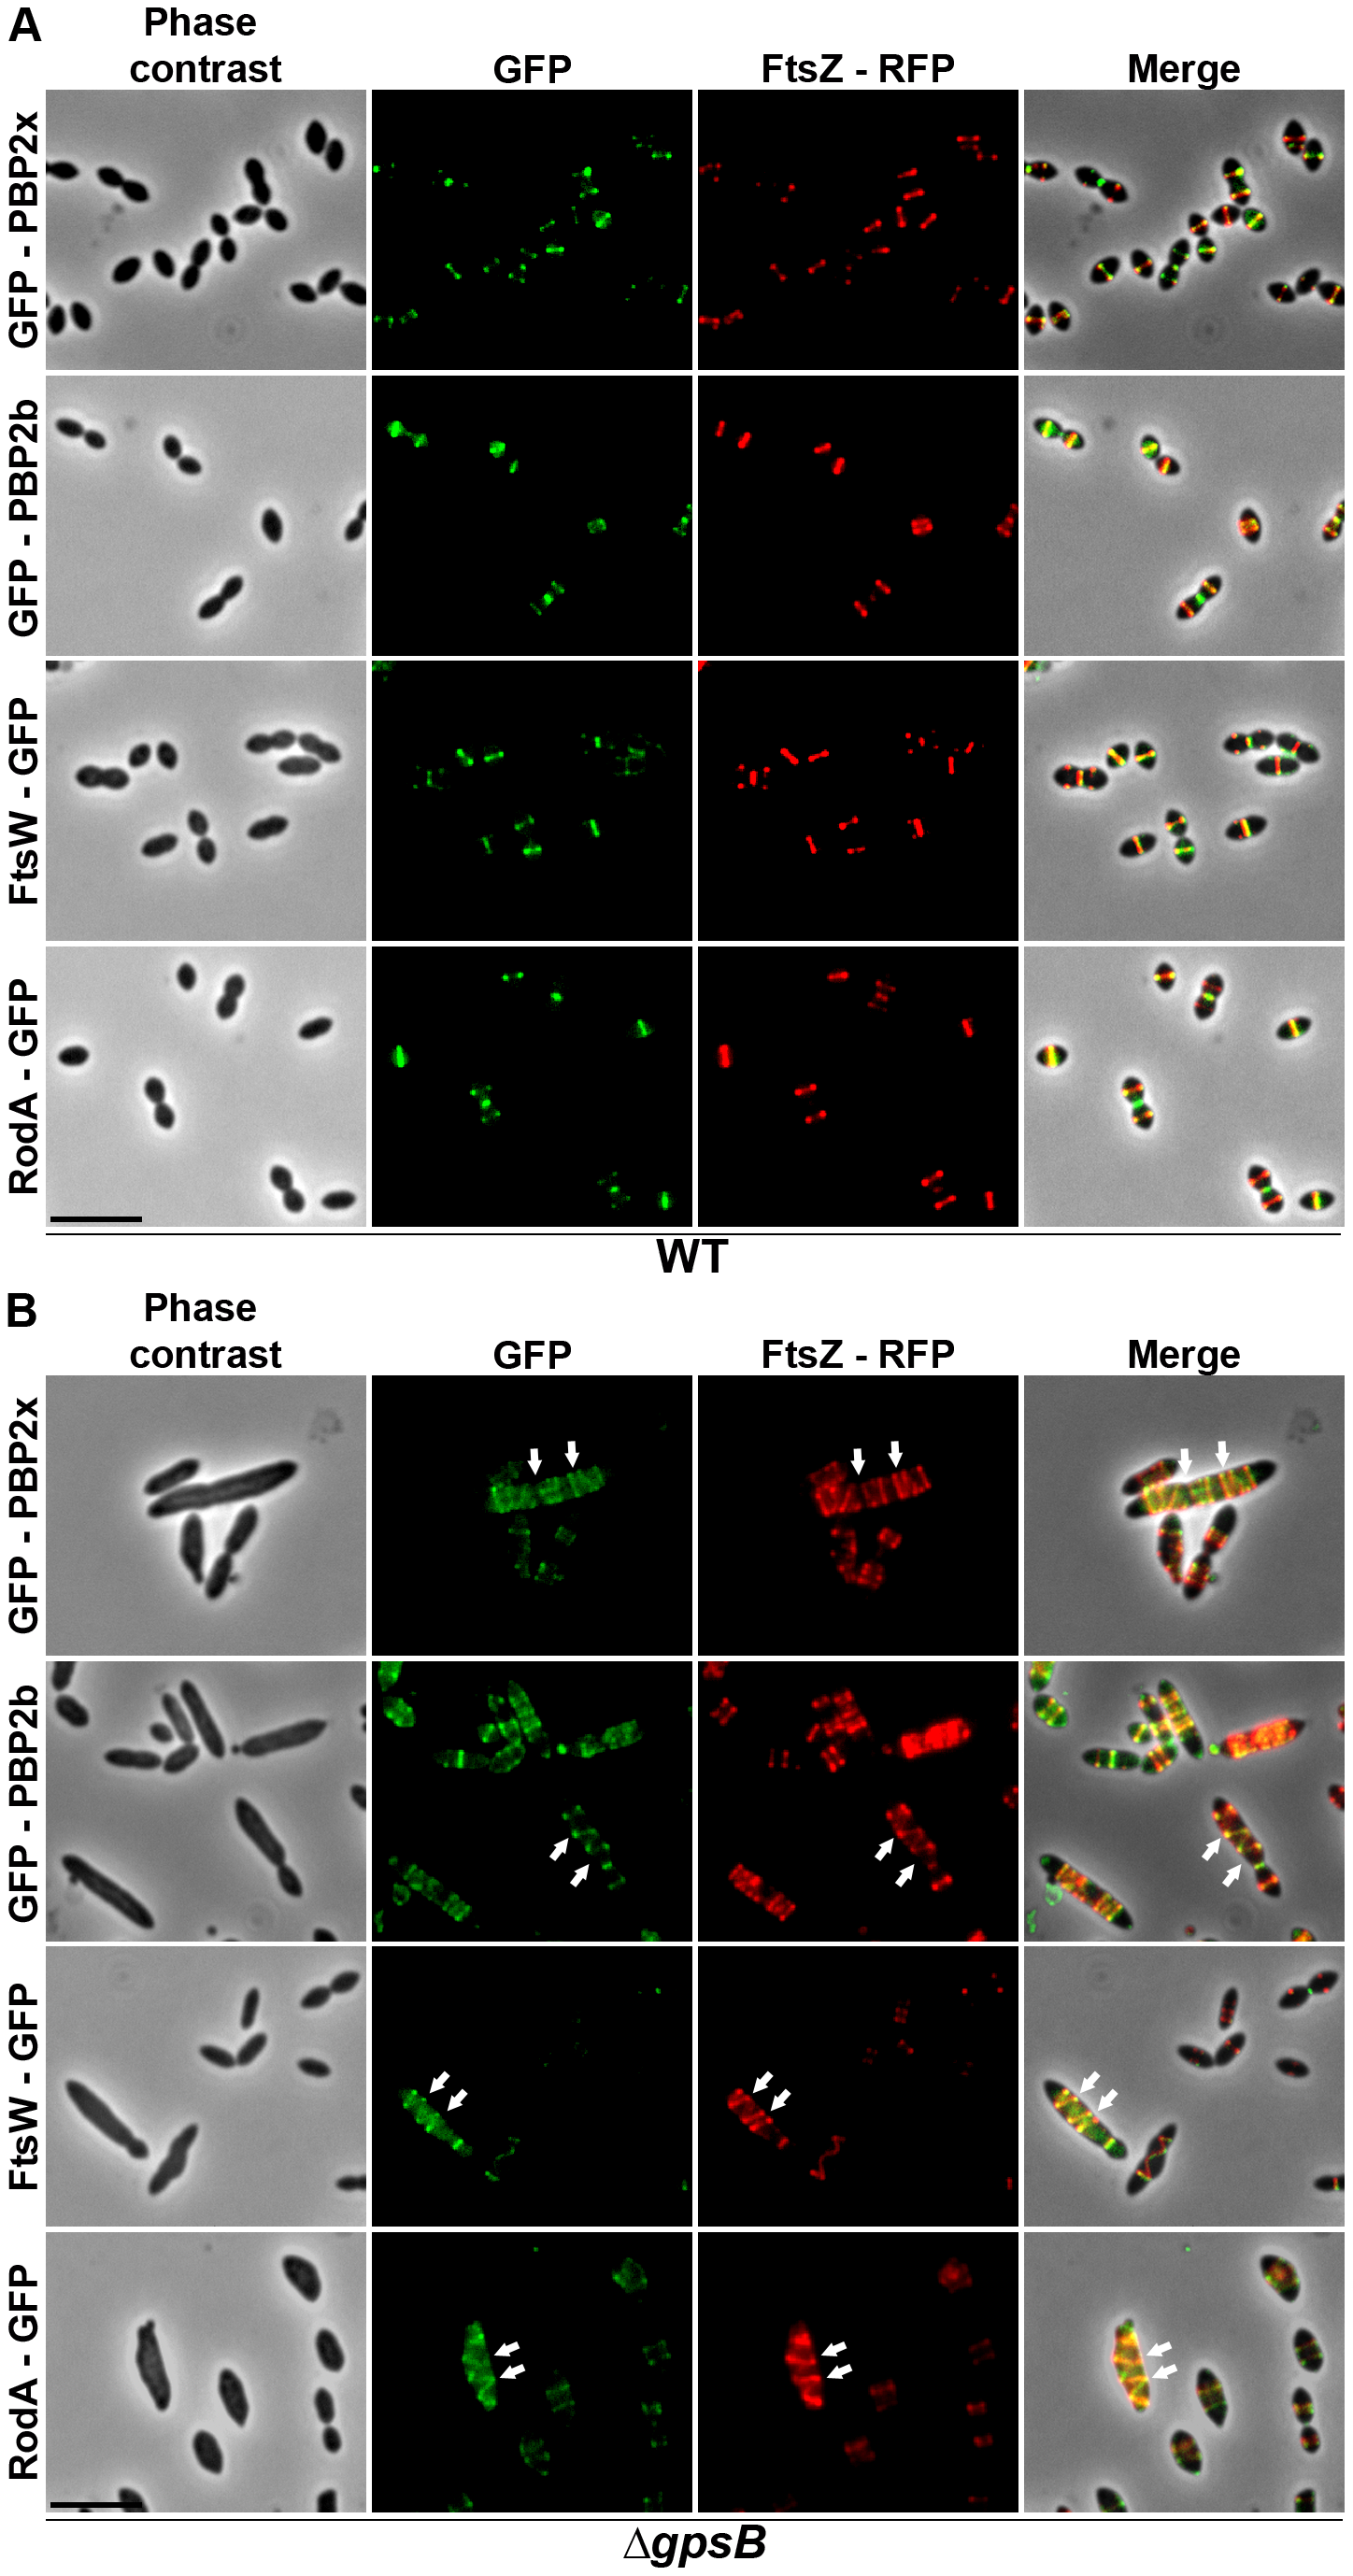 Localization of GFP fused PBP2x, PBP2b, FtsW or RodA together with FtsZ-RFP in WT and Δ<i>gpsB</i> cells.